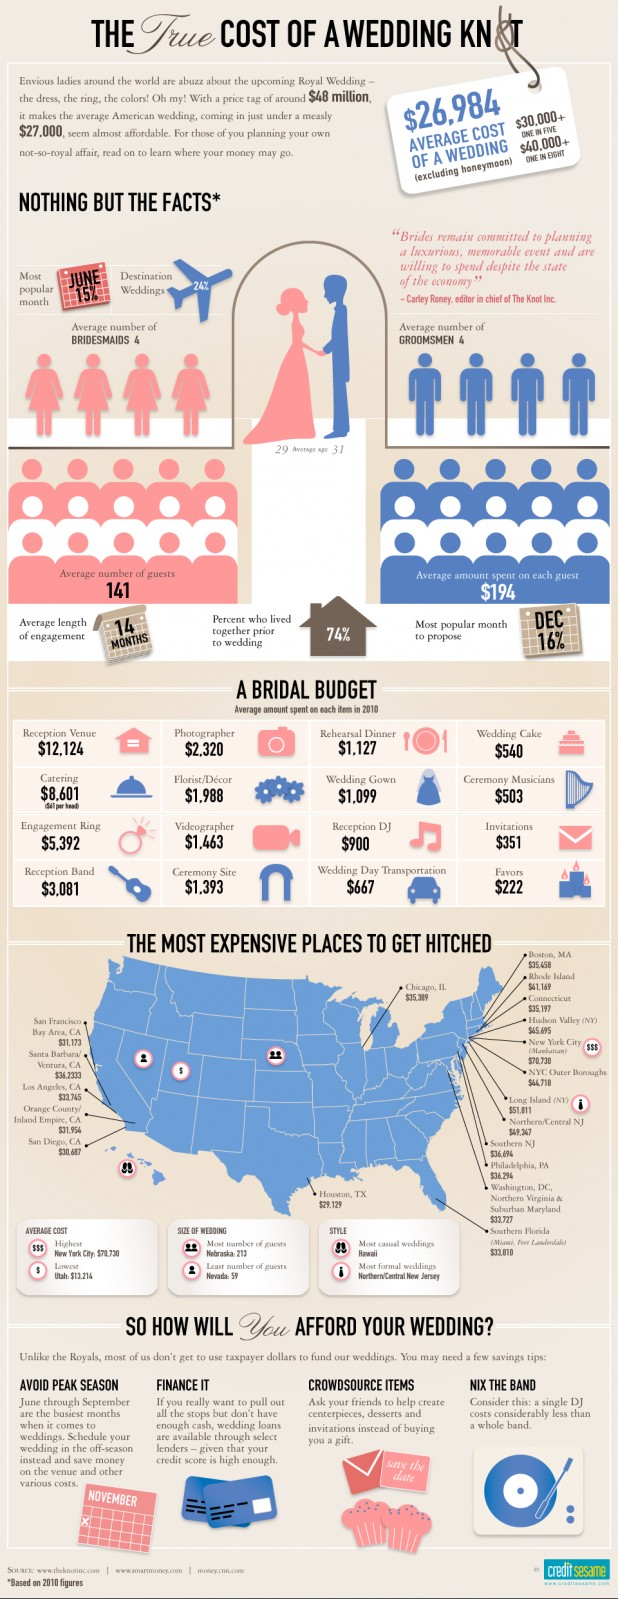 **Infographic fromhttp://blog.visual.ly/wedding-infographics/